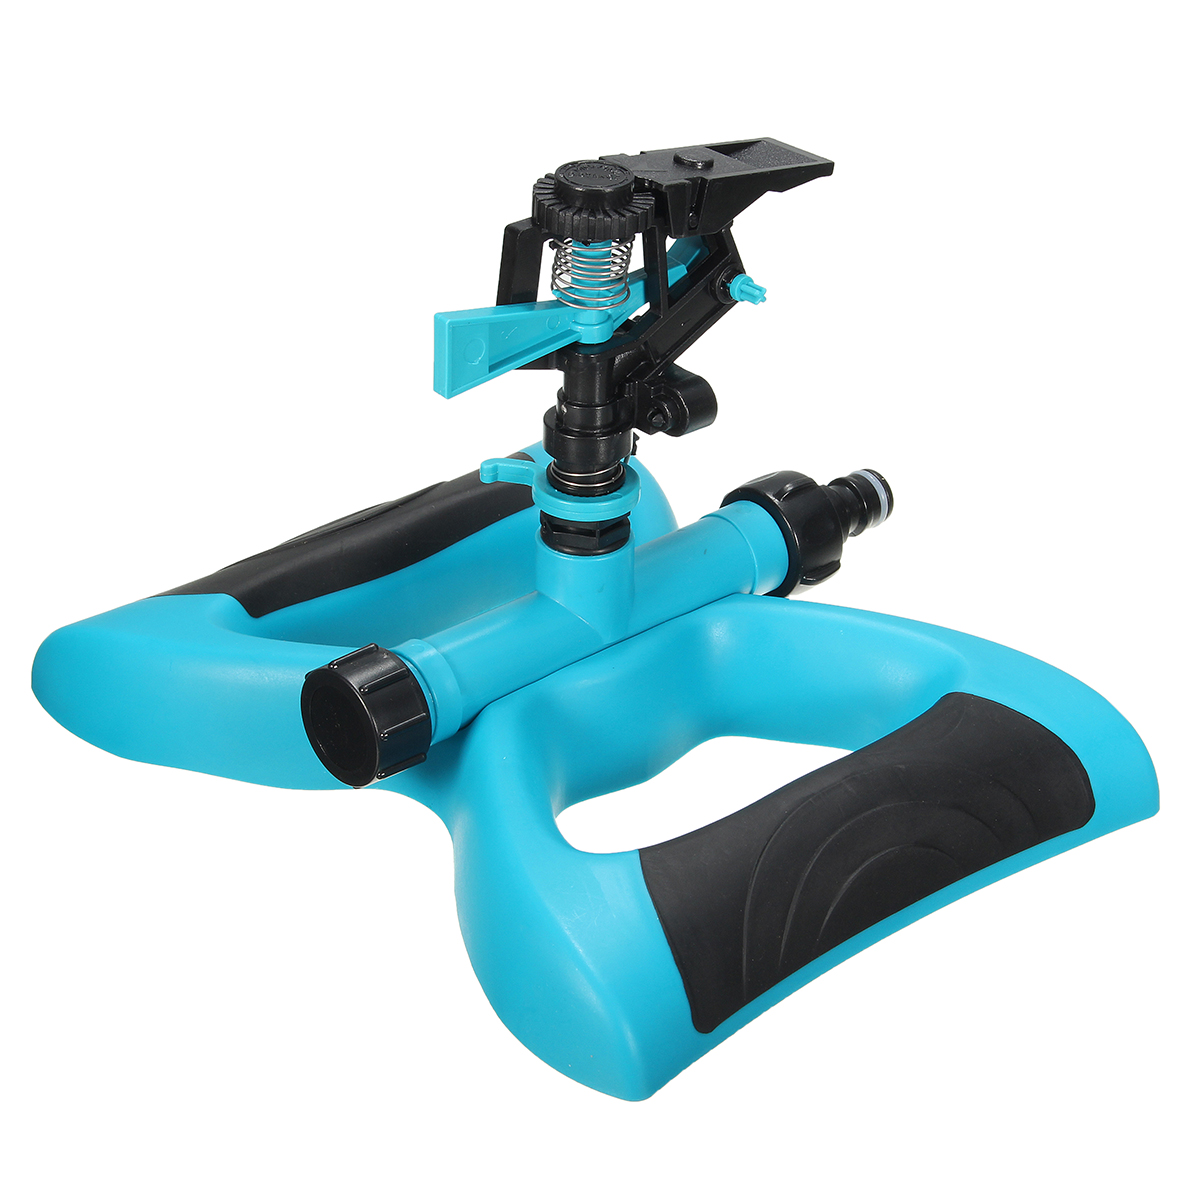 360 Degree Rotating Water Sprinkler Automatic Watering Lawn Garden Plant Yard Irrigation System